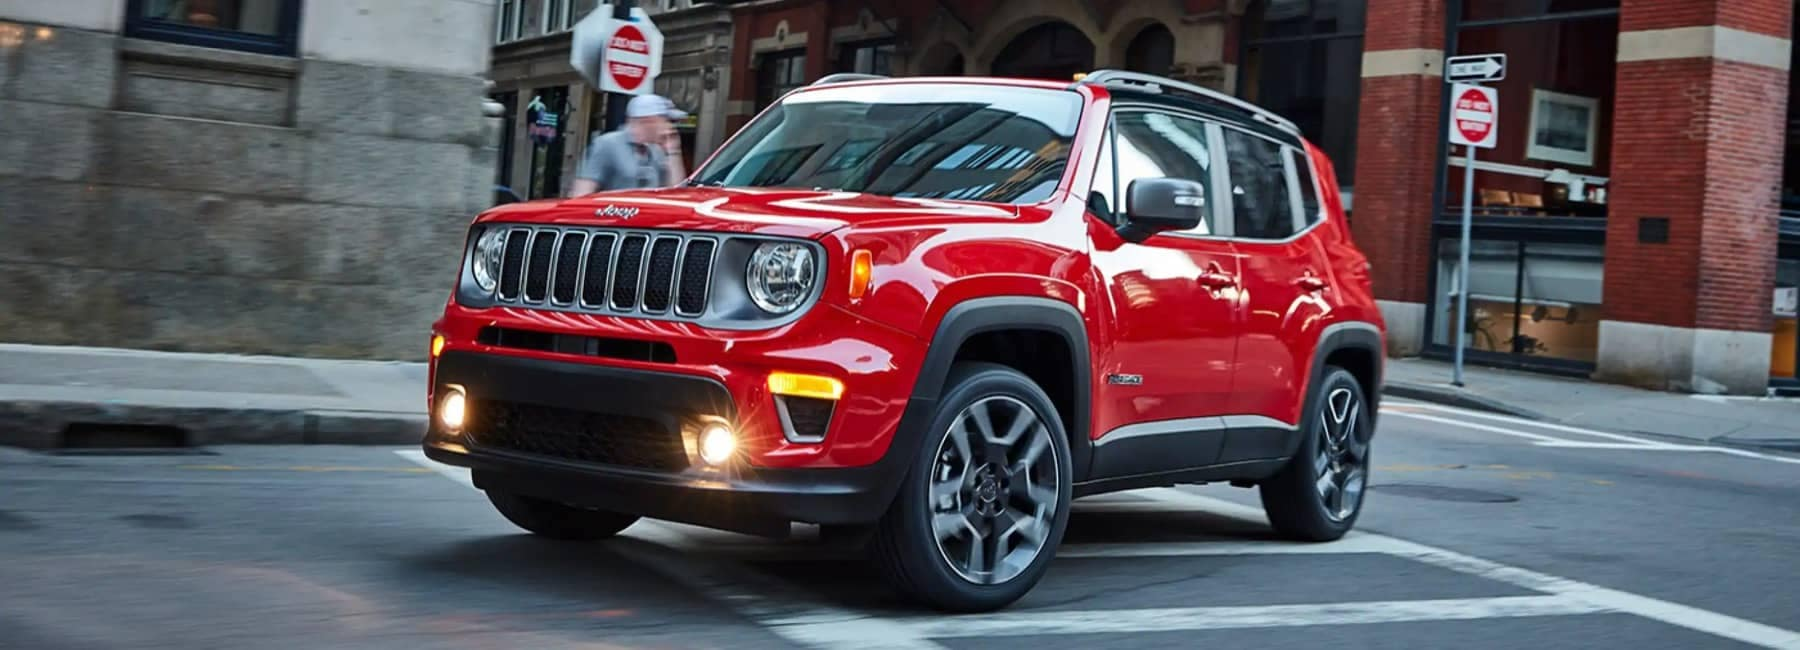 2021 Jeep Renegade driving in the city